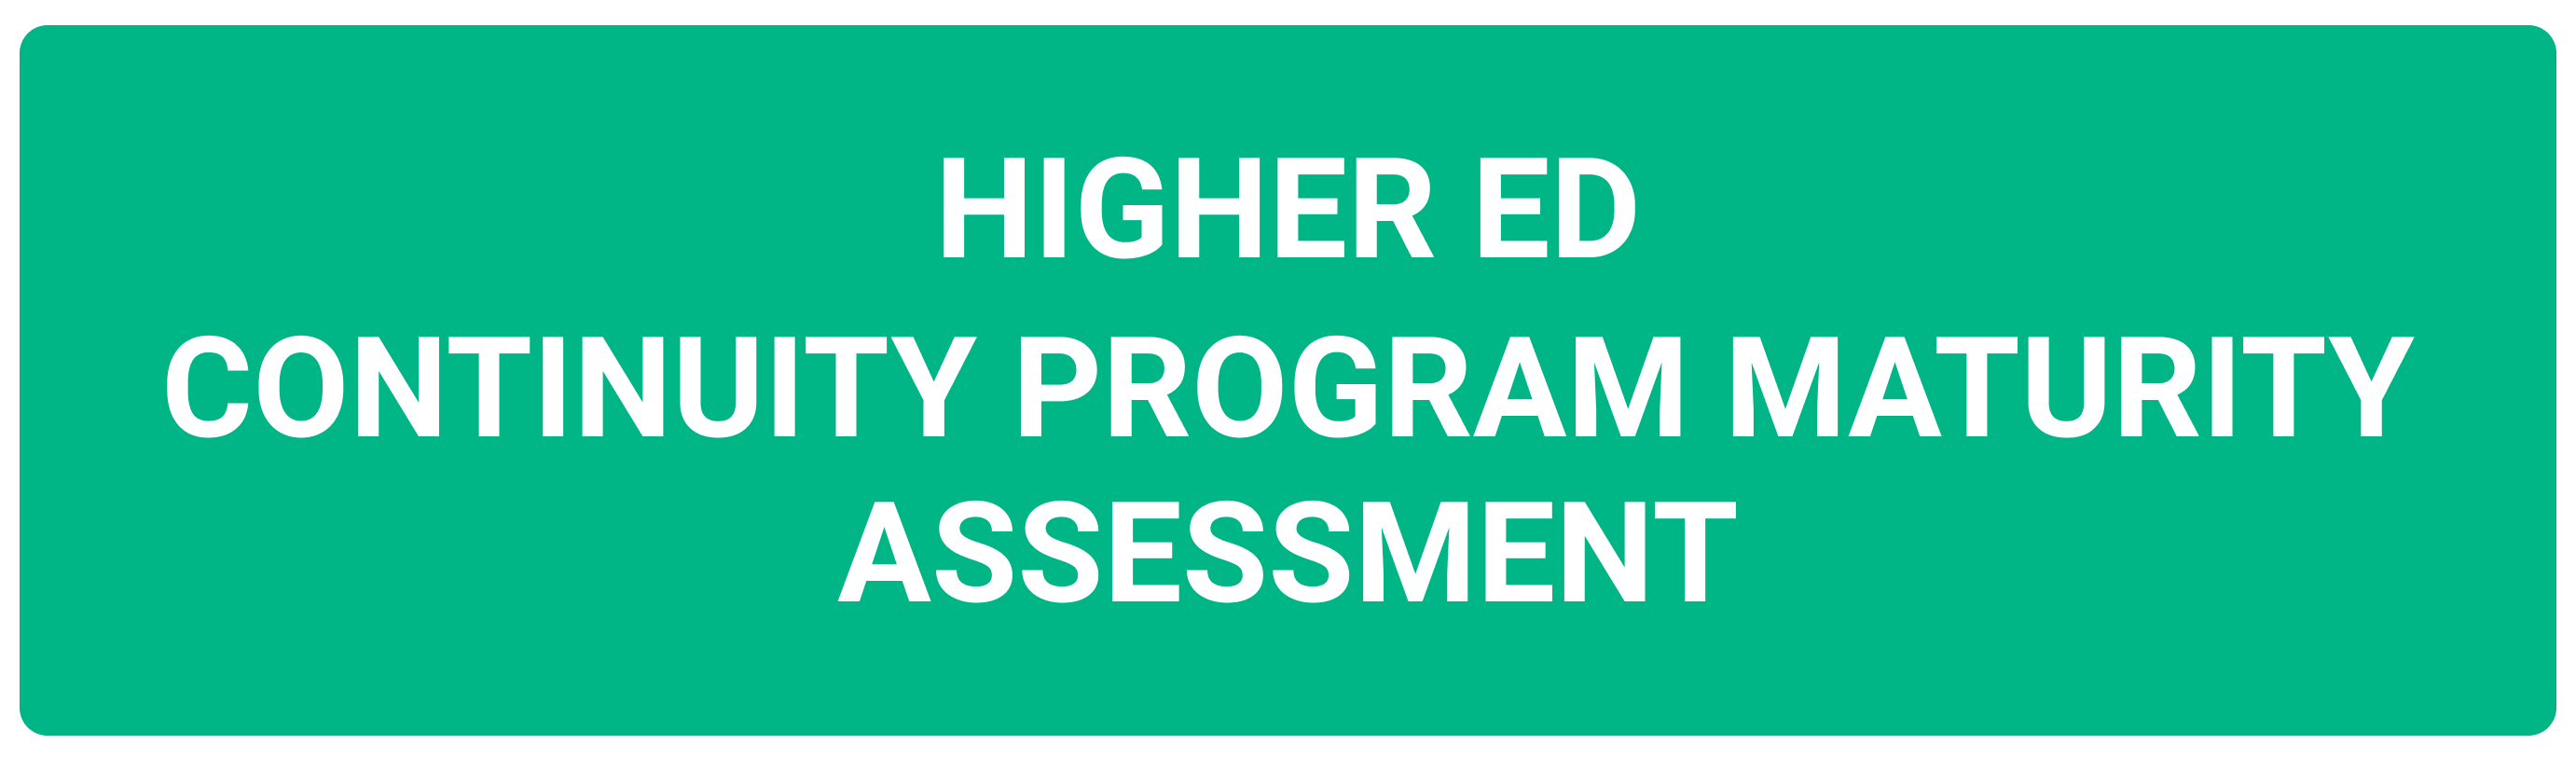 Higher Ed Continuity Program Maturity Assessment